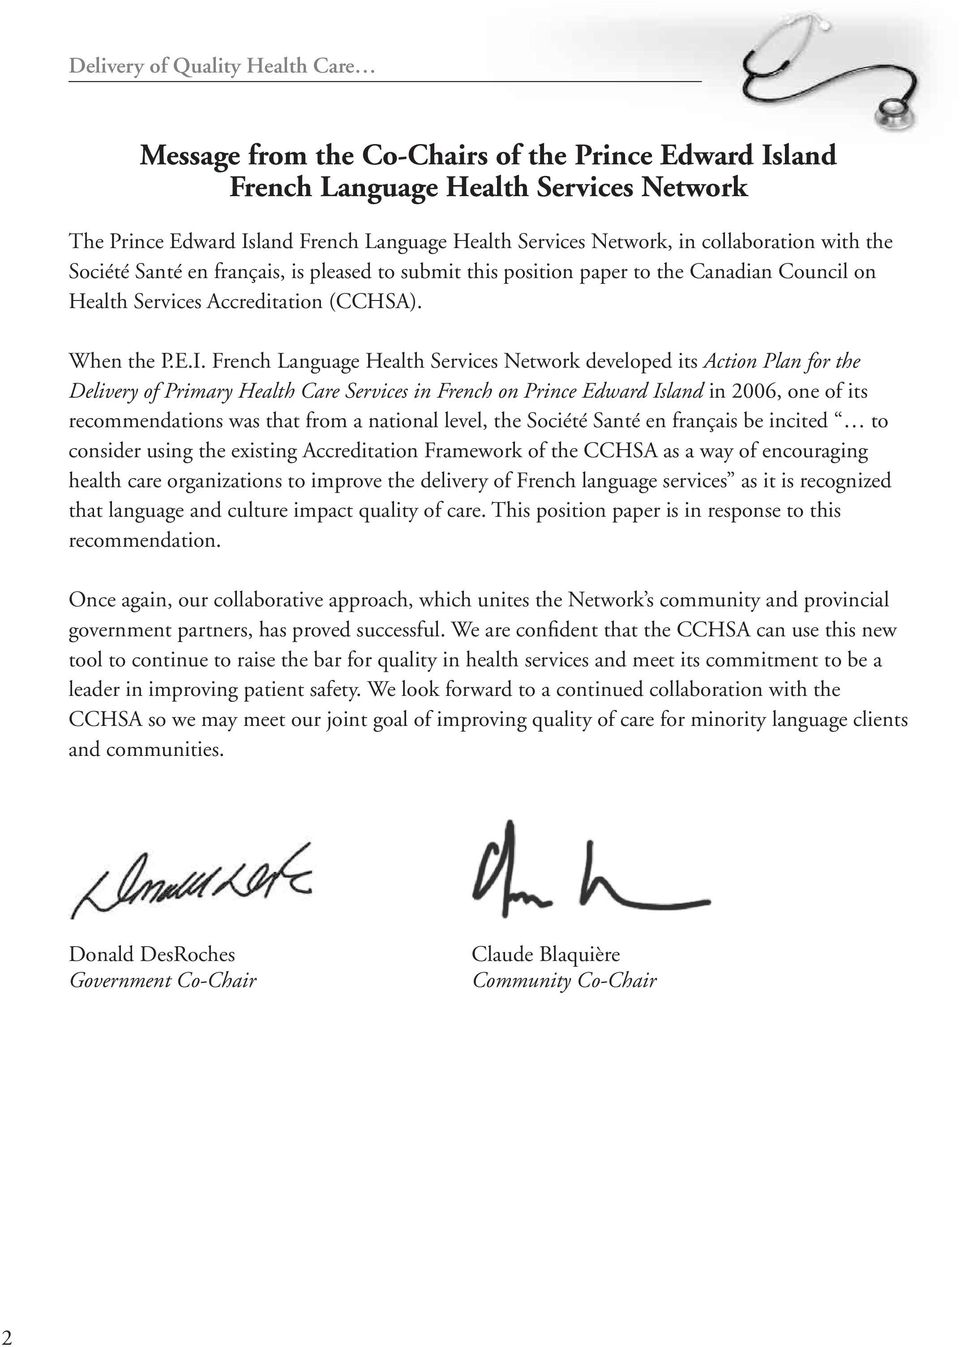 French Language Health Services Network developed its Action Plan for the Delivery of Primary Health Care Services in French on Prince Edward Island in 2006, one of its recommendations was that from